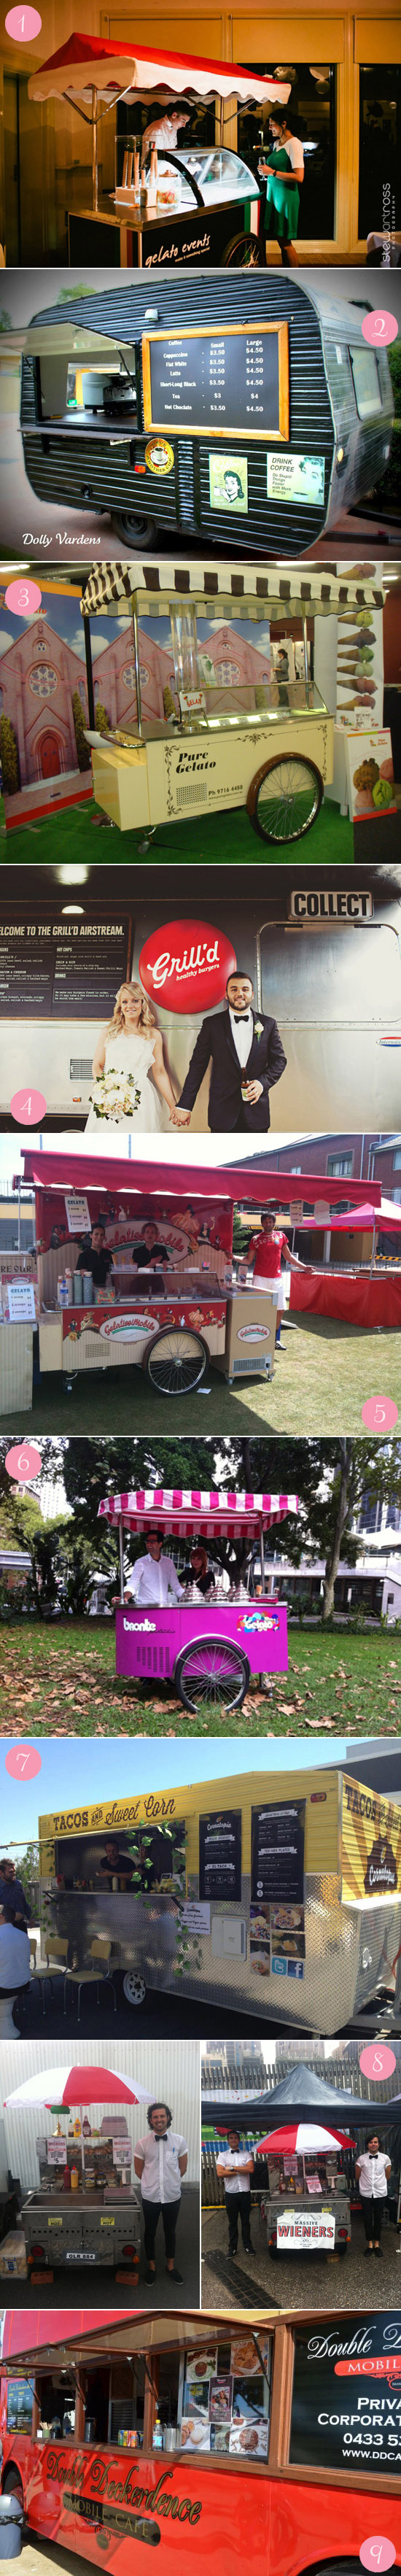 australian food carts for wedding hire1 Carting it Around Delicious Wedding Food Carts & Trucks